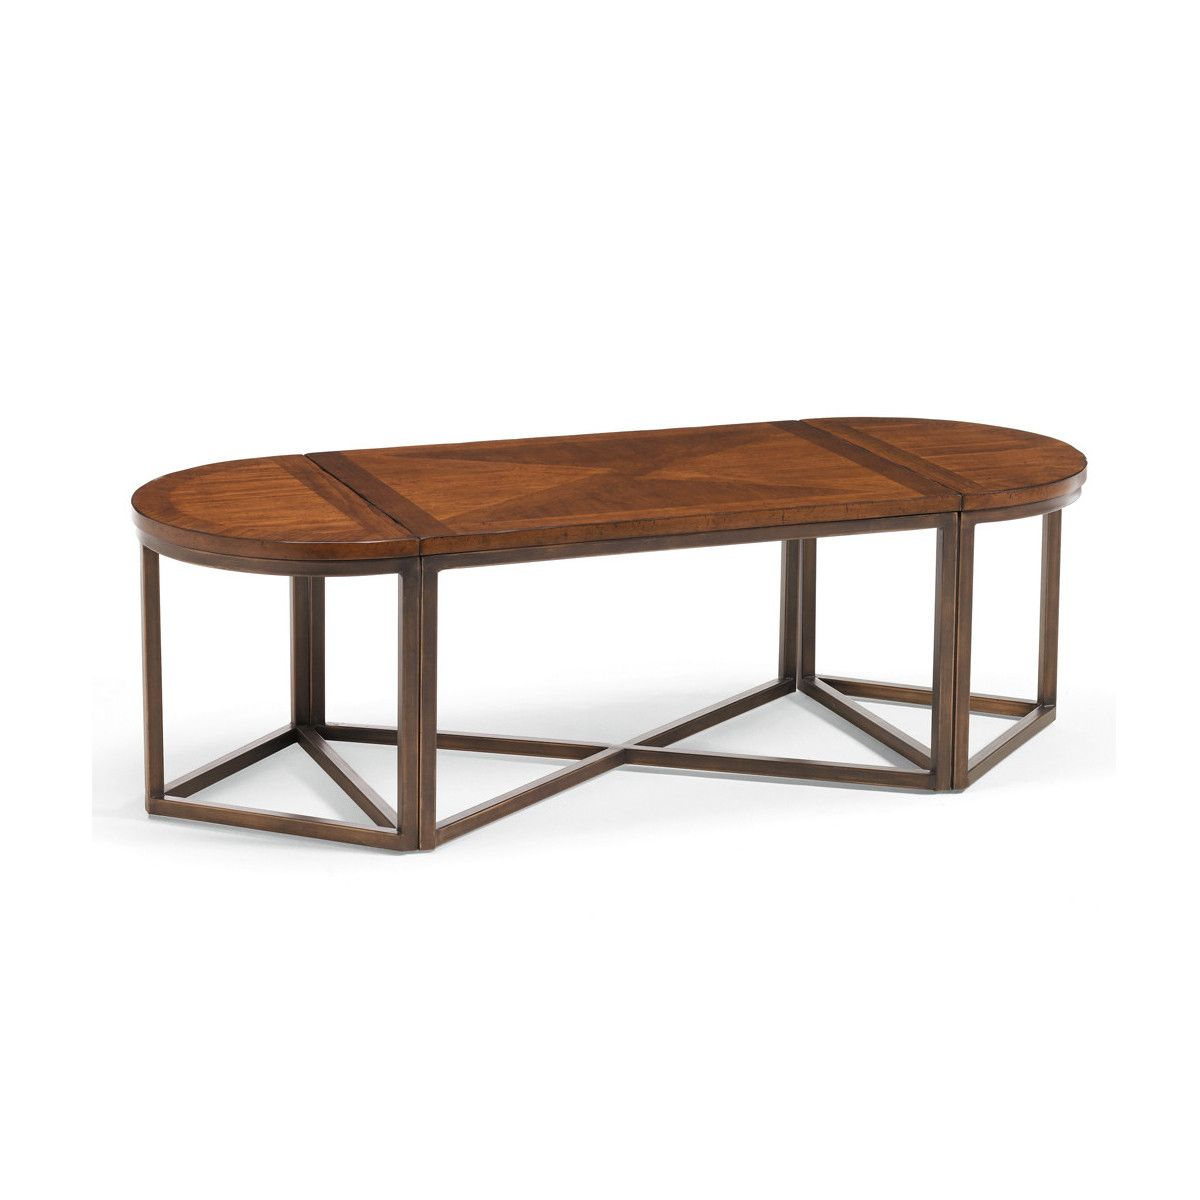 Palm Beach Coffee Table Features Metal Legs Decorative Timber Top And Movable Ends That Can Coffee Table Living Room Coffee Table Cocktail Tables Living Room [ 1200 x 1200 Pixel ]